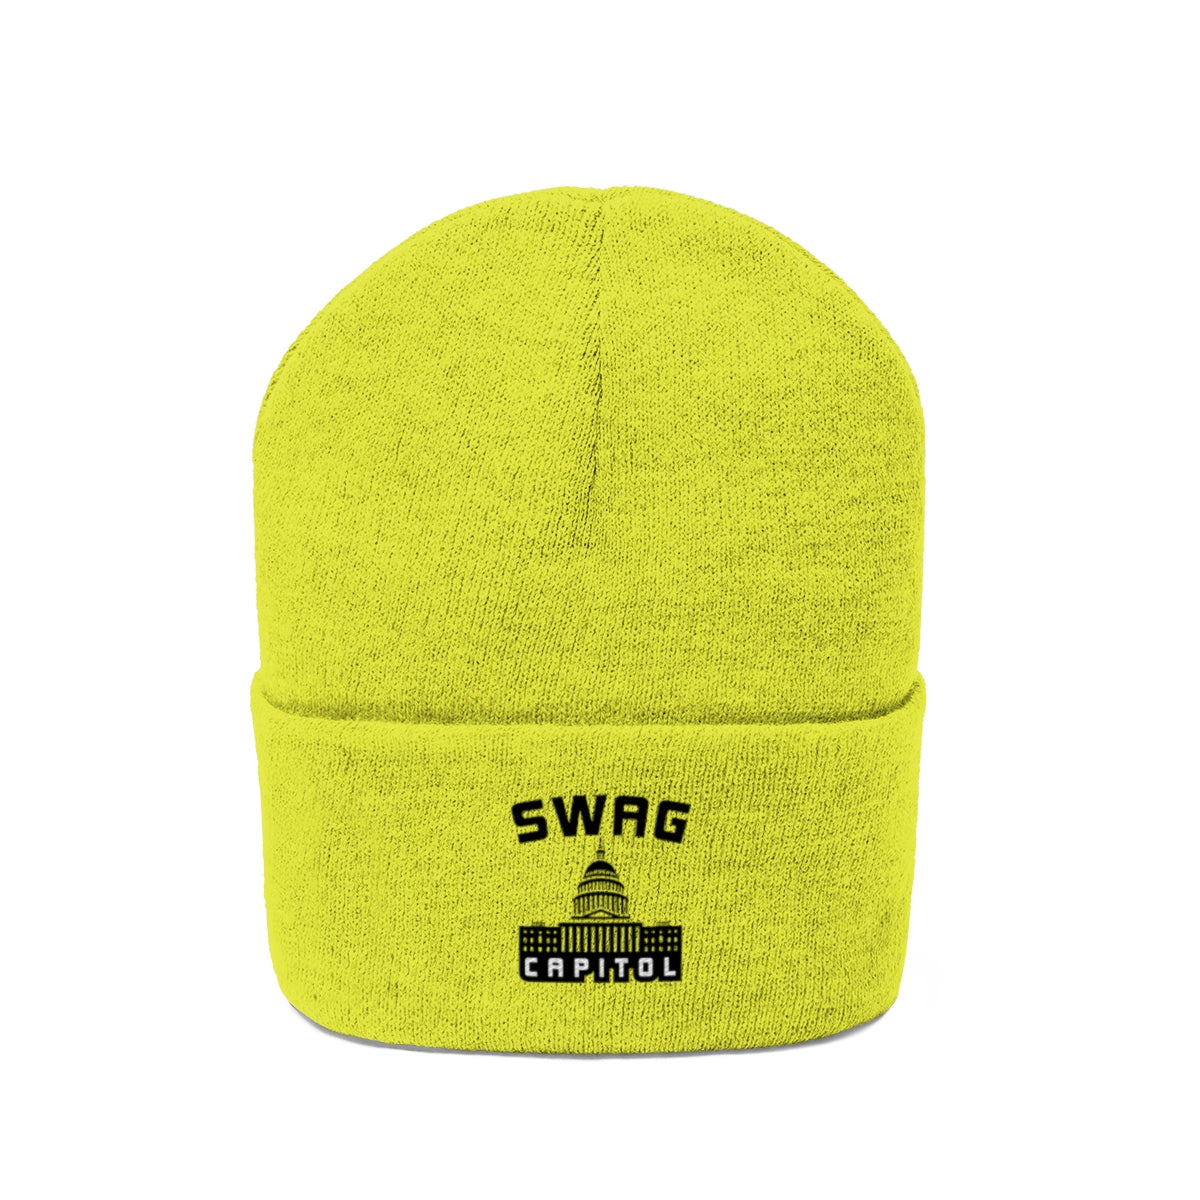 Sassy & Swag Collections - Swag Capitol Men's Knit Beanie